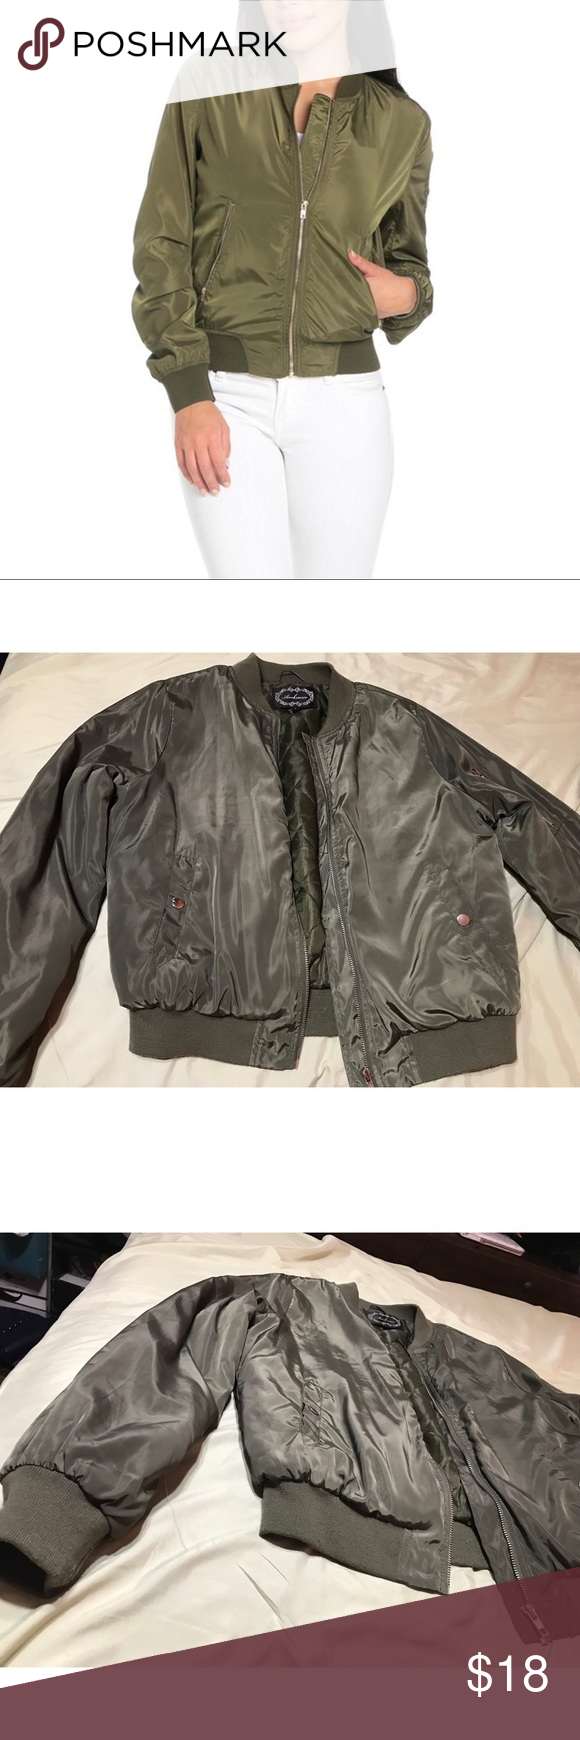 Army Green Bomber Jacket Army Green Bomber Jacket Thick And Cushiony Material Inside Two Pockets And Army Green Bomber Jacket Green Bomber Jacket Bomber Jacket [ 1740 x 580 Pixel ]